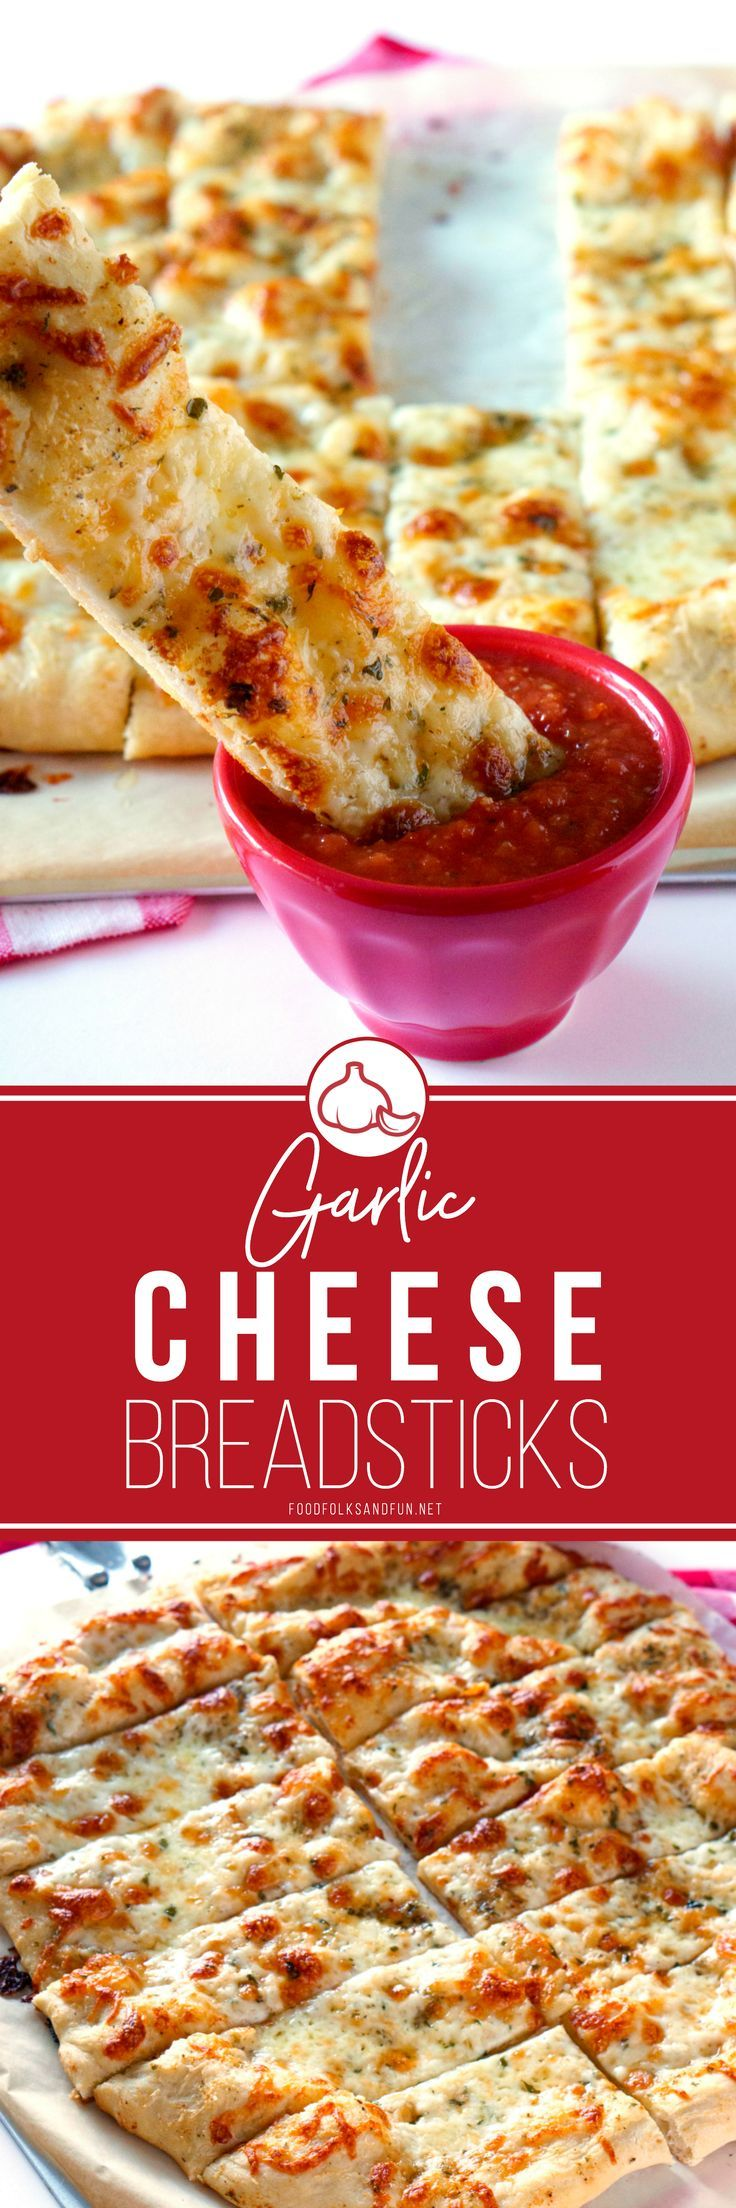 Garlic Cheese Breadsticks are perfect for pizza nights, parties, or just because! These breadsticks taste like they came right from your favorite pizzeria! | #recipe #recipeoftheday #ItalianFood #breadsticks #comfortfood #appetizer #comfortfood